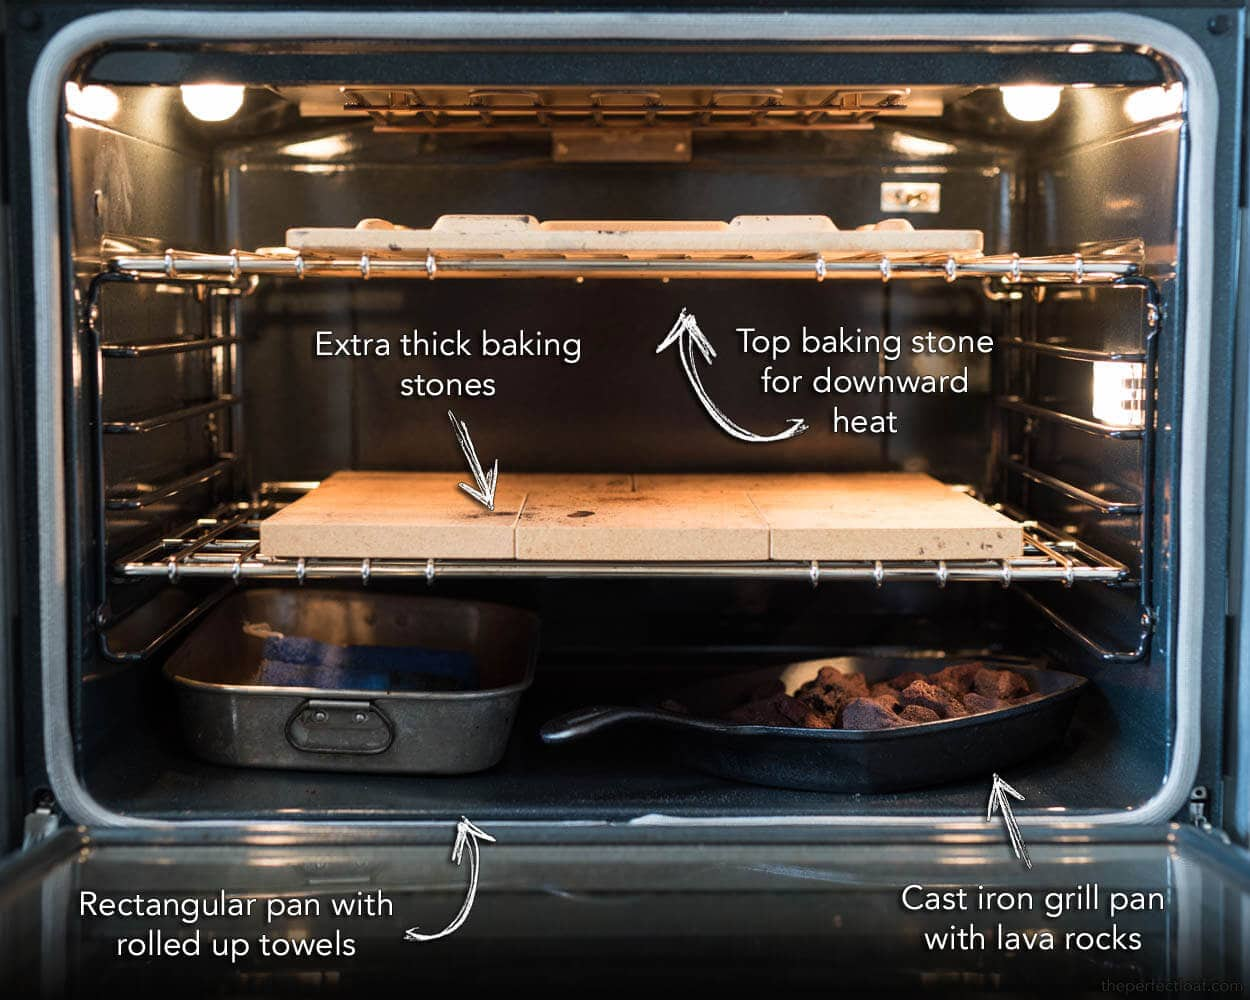 Best Electric Oven For Baking Cakes